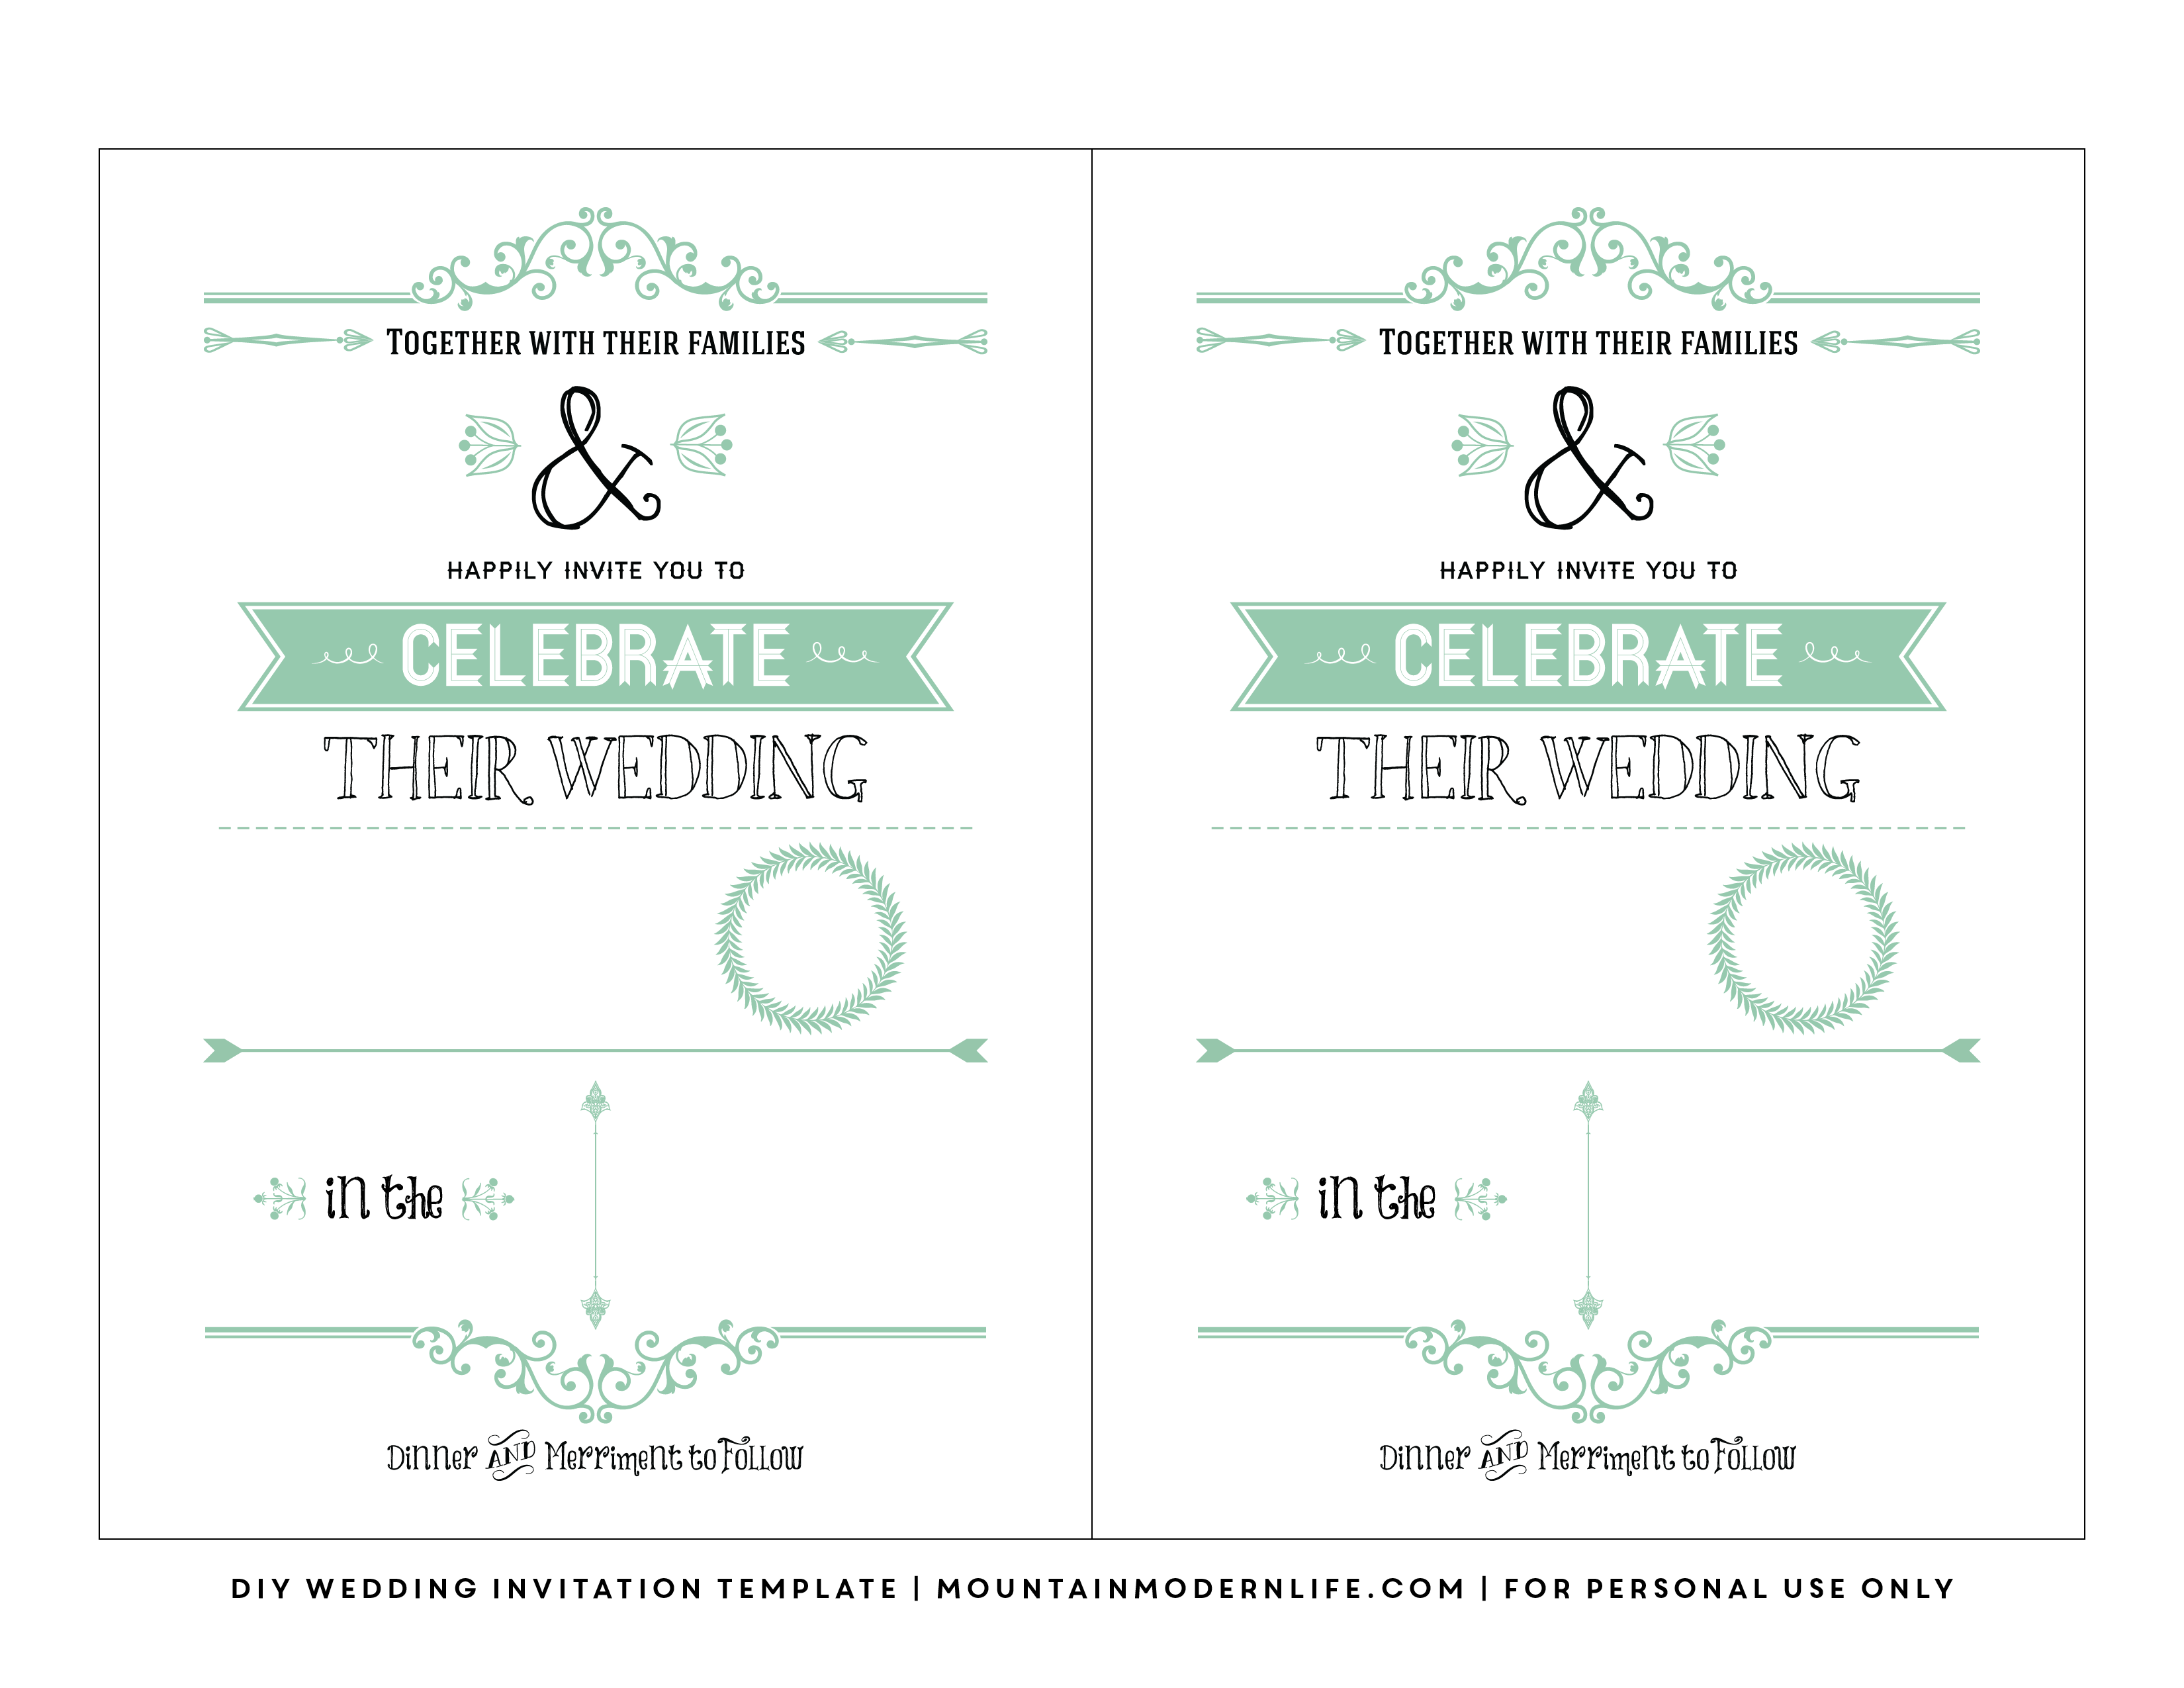 Blank Invitation is awesome invitations template